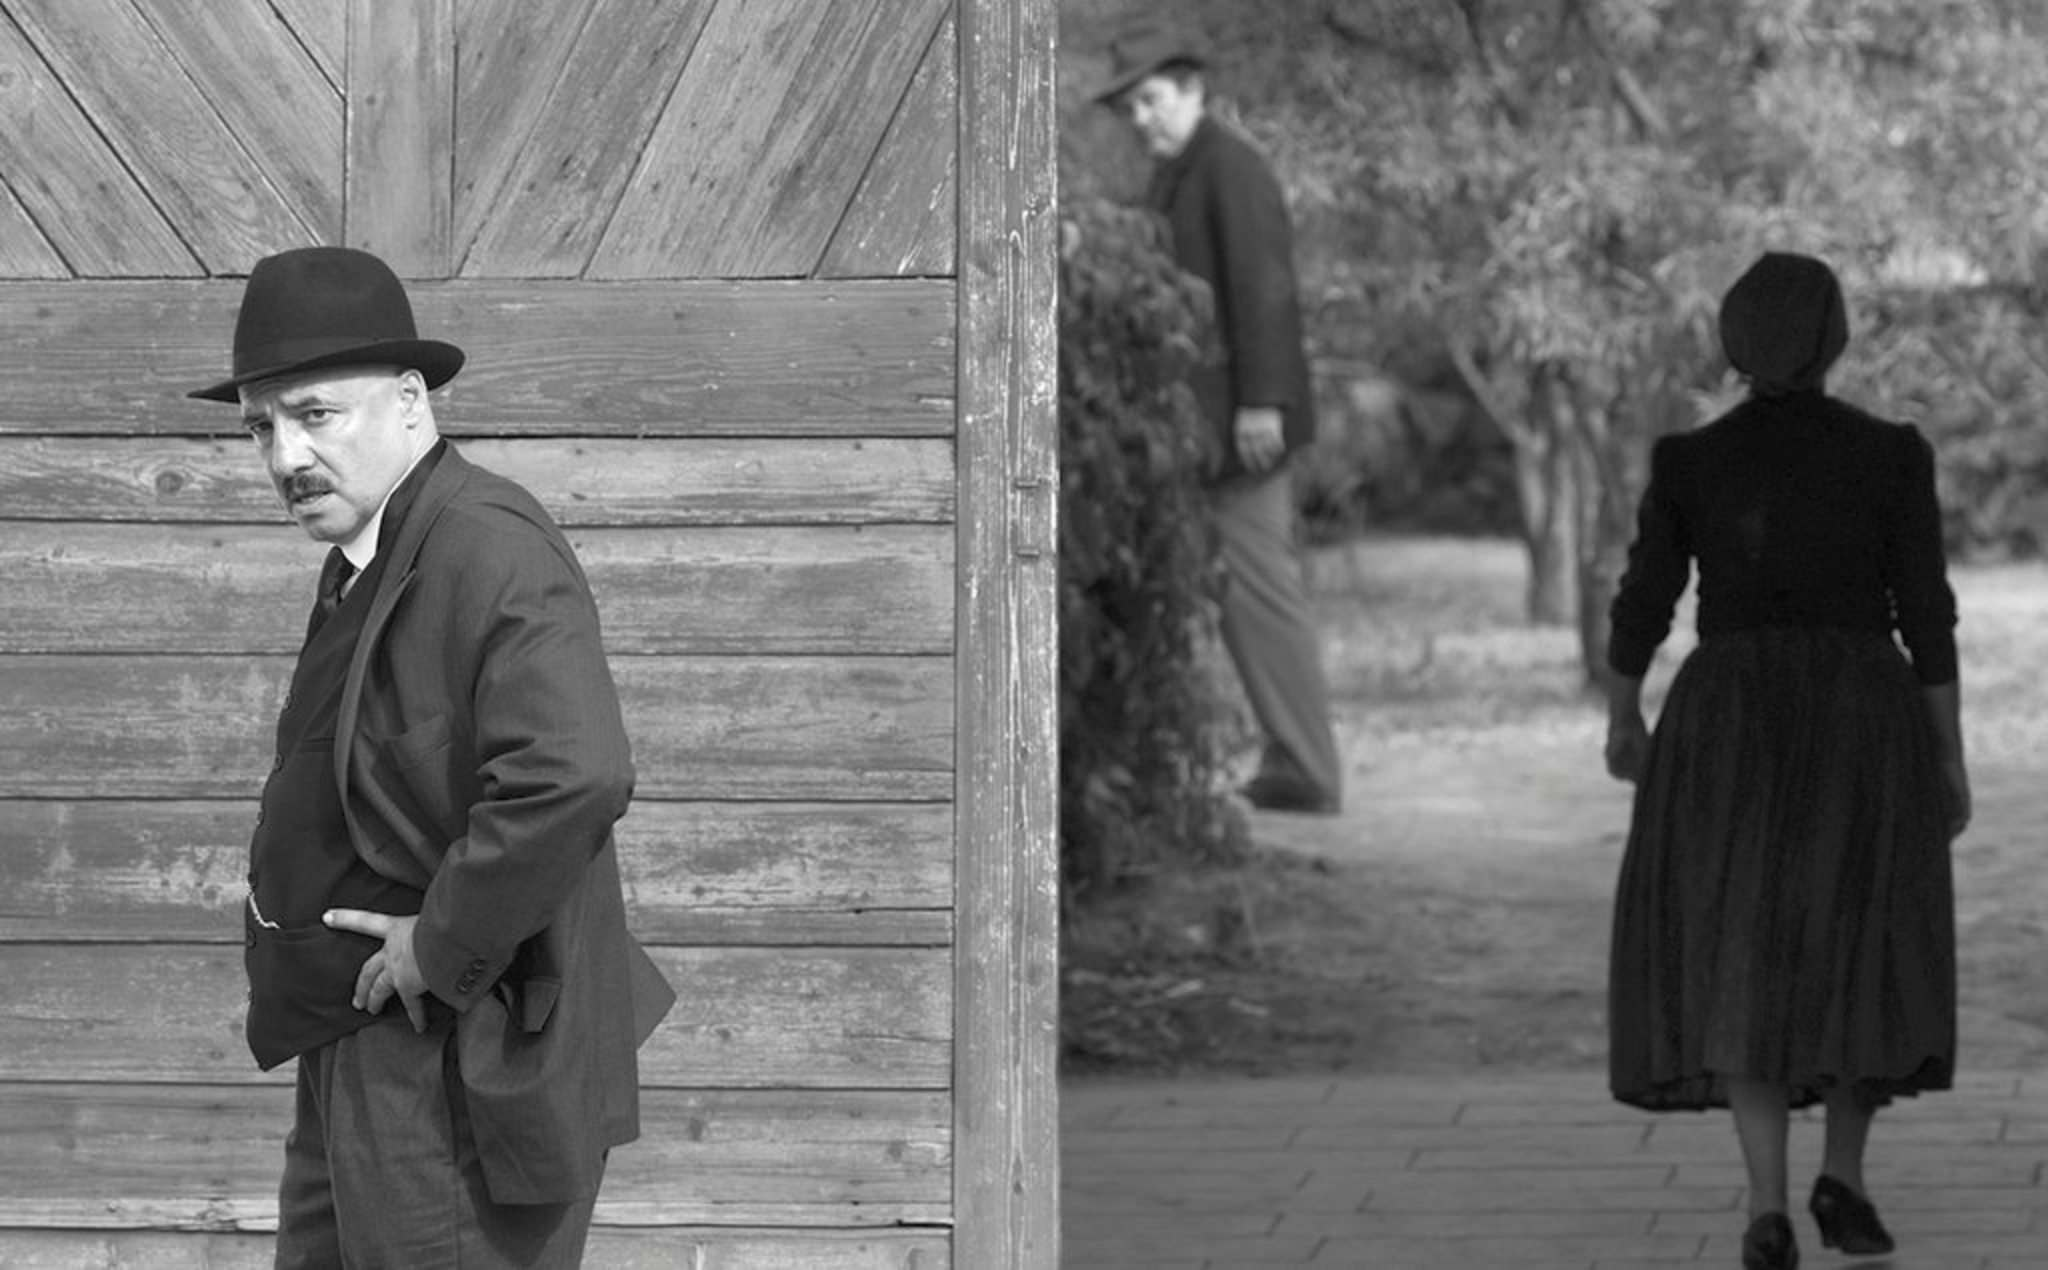 Town clerk István Szentes (Péter Rudolf) worries about his town's unwelcome visitors, while Mr. and Mrs. Kustár linger in the background, in a scene from the Hungarian film 1945. (Lenke Szilagyi / Menemsha Films)</p>